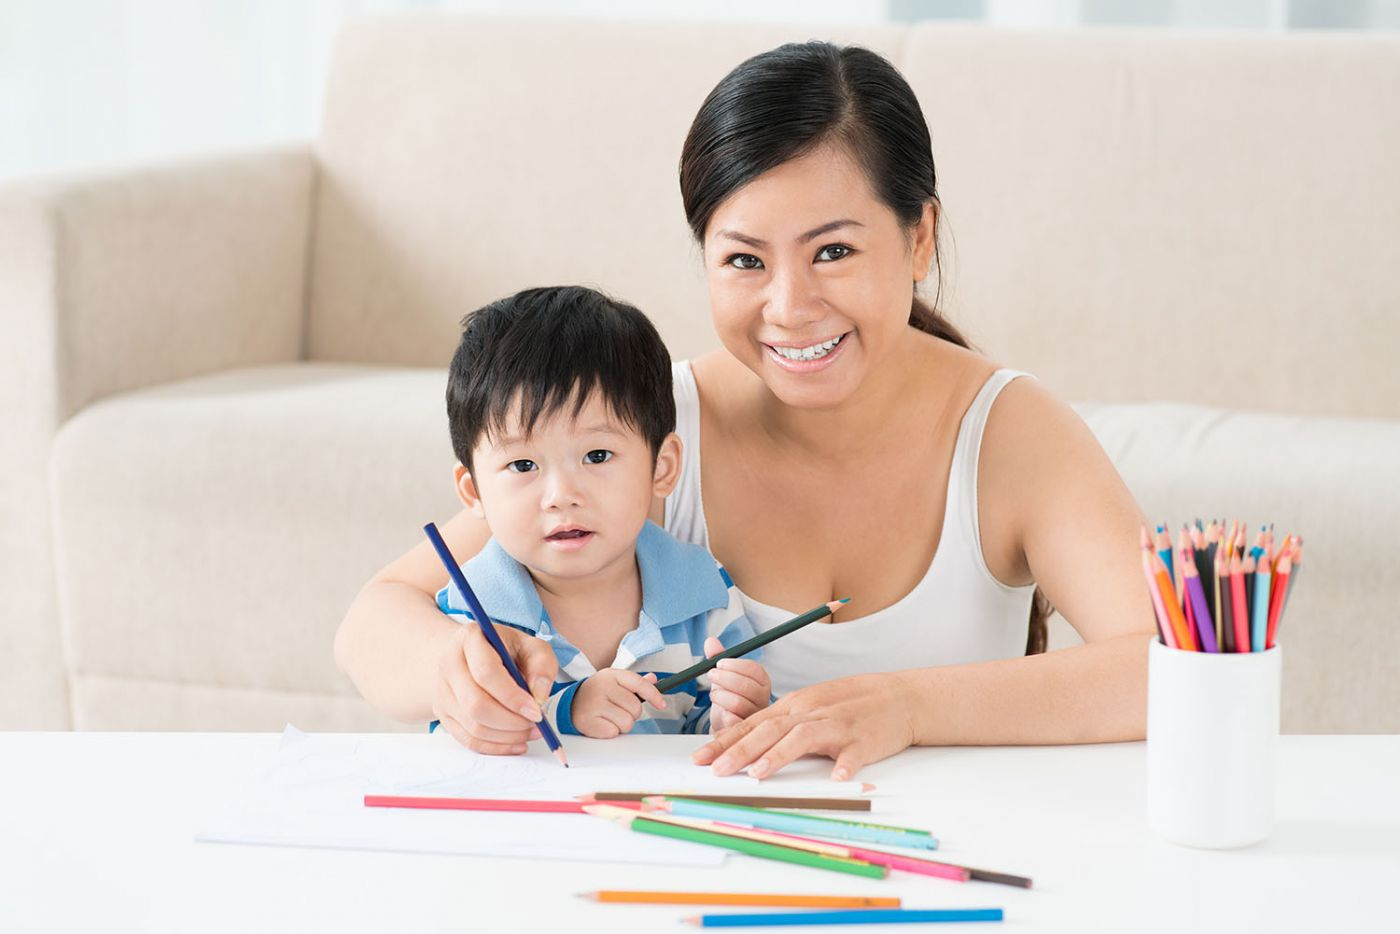 Mother teaches child arts and drawing